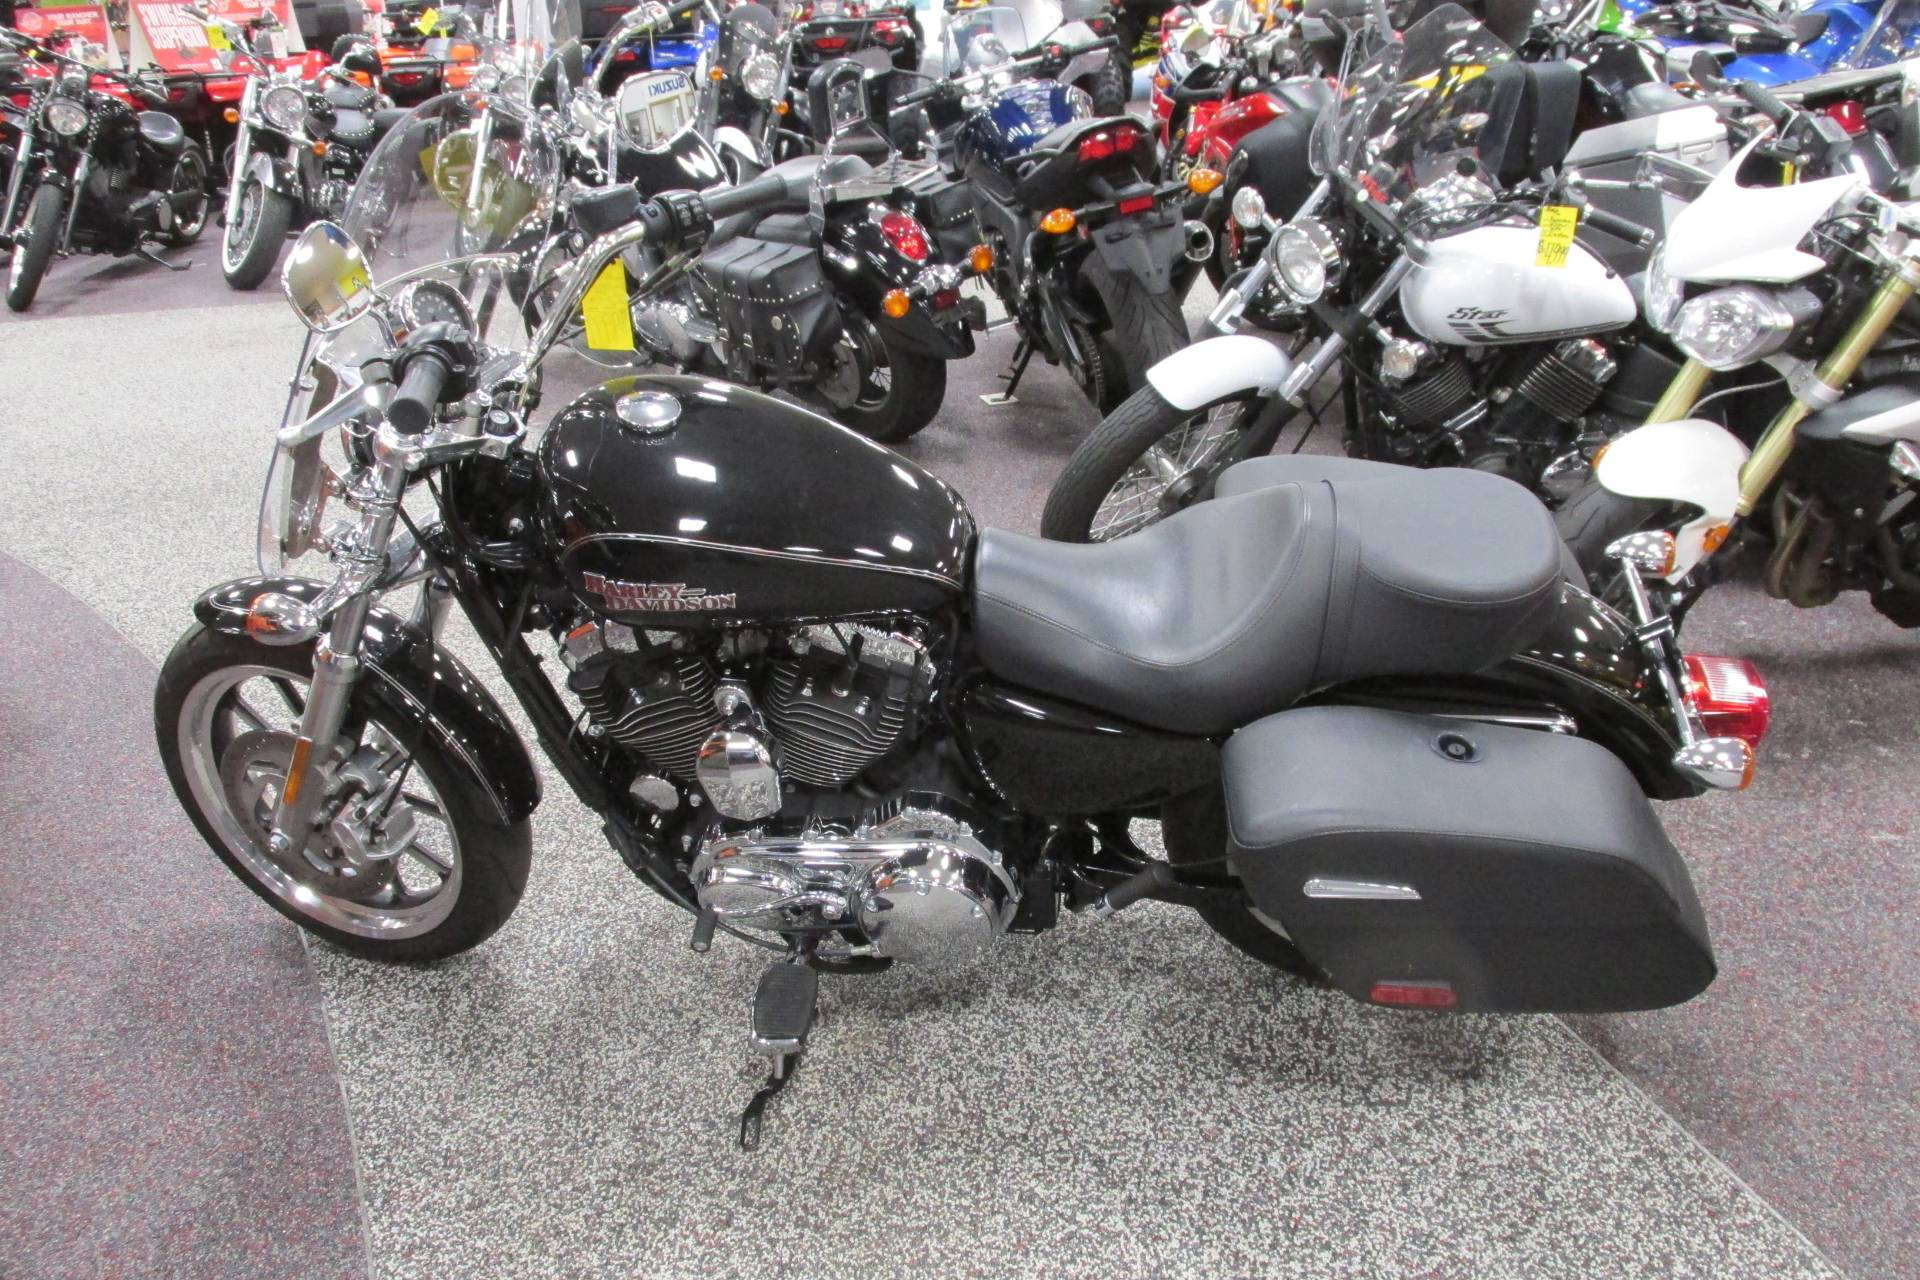 2016 Harley Davidson 1200 SPORTSTER SUPER LOW TOURING in Springfield, Ohio